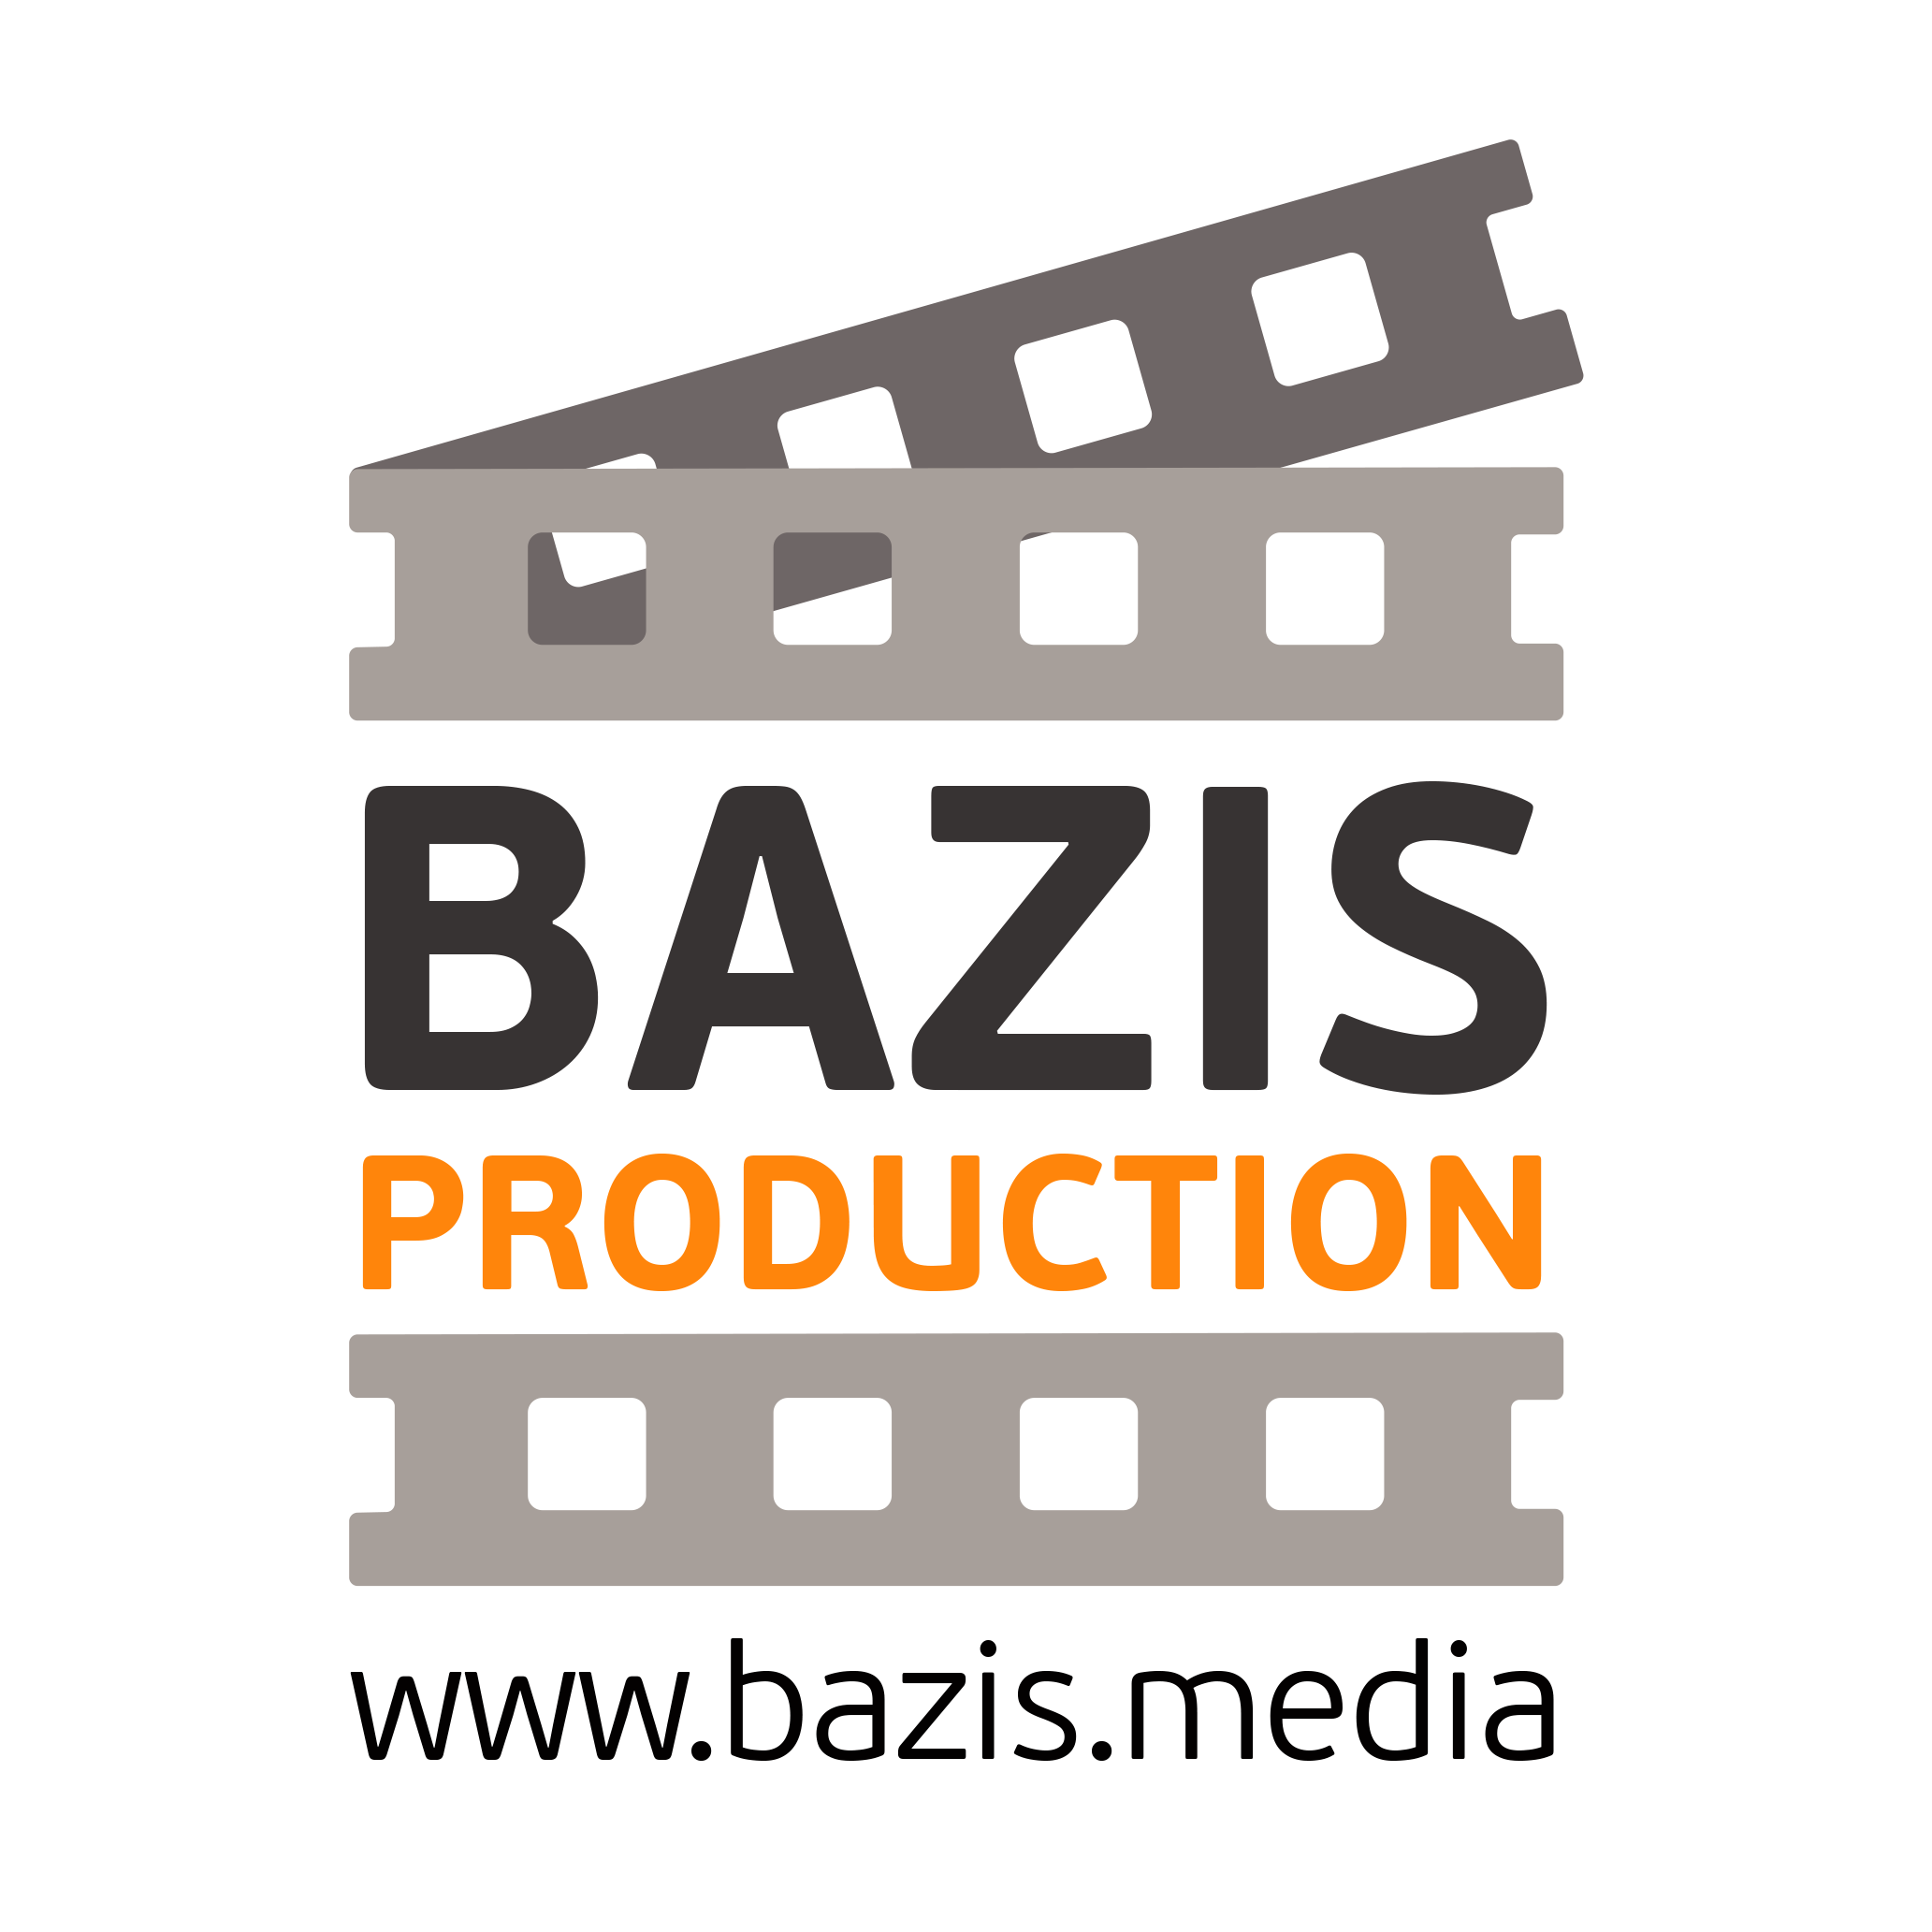 Bazis Production Station